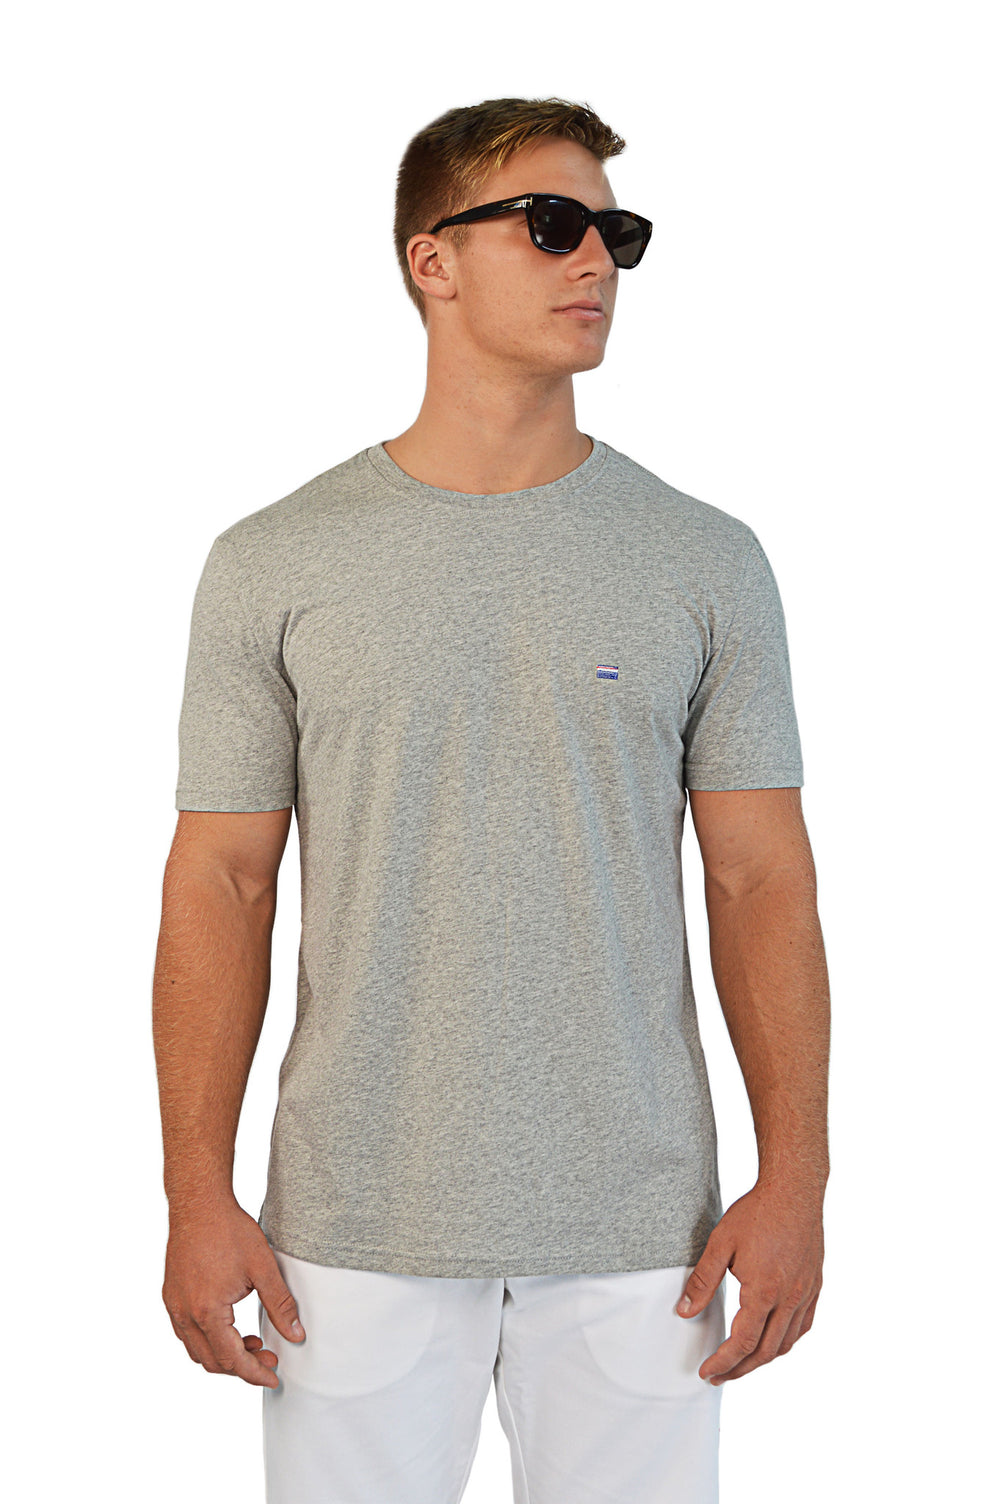 front view grey t-shirt